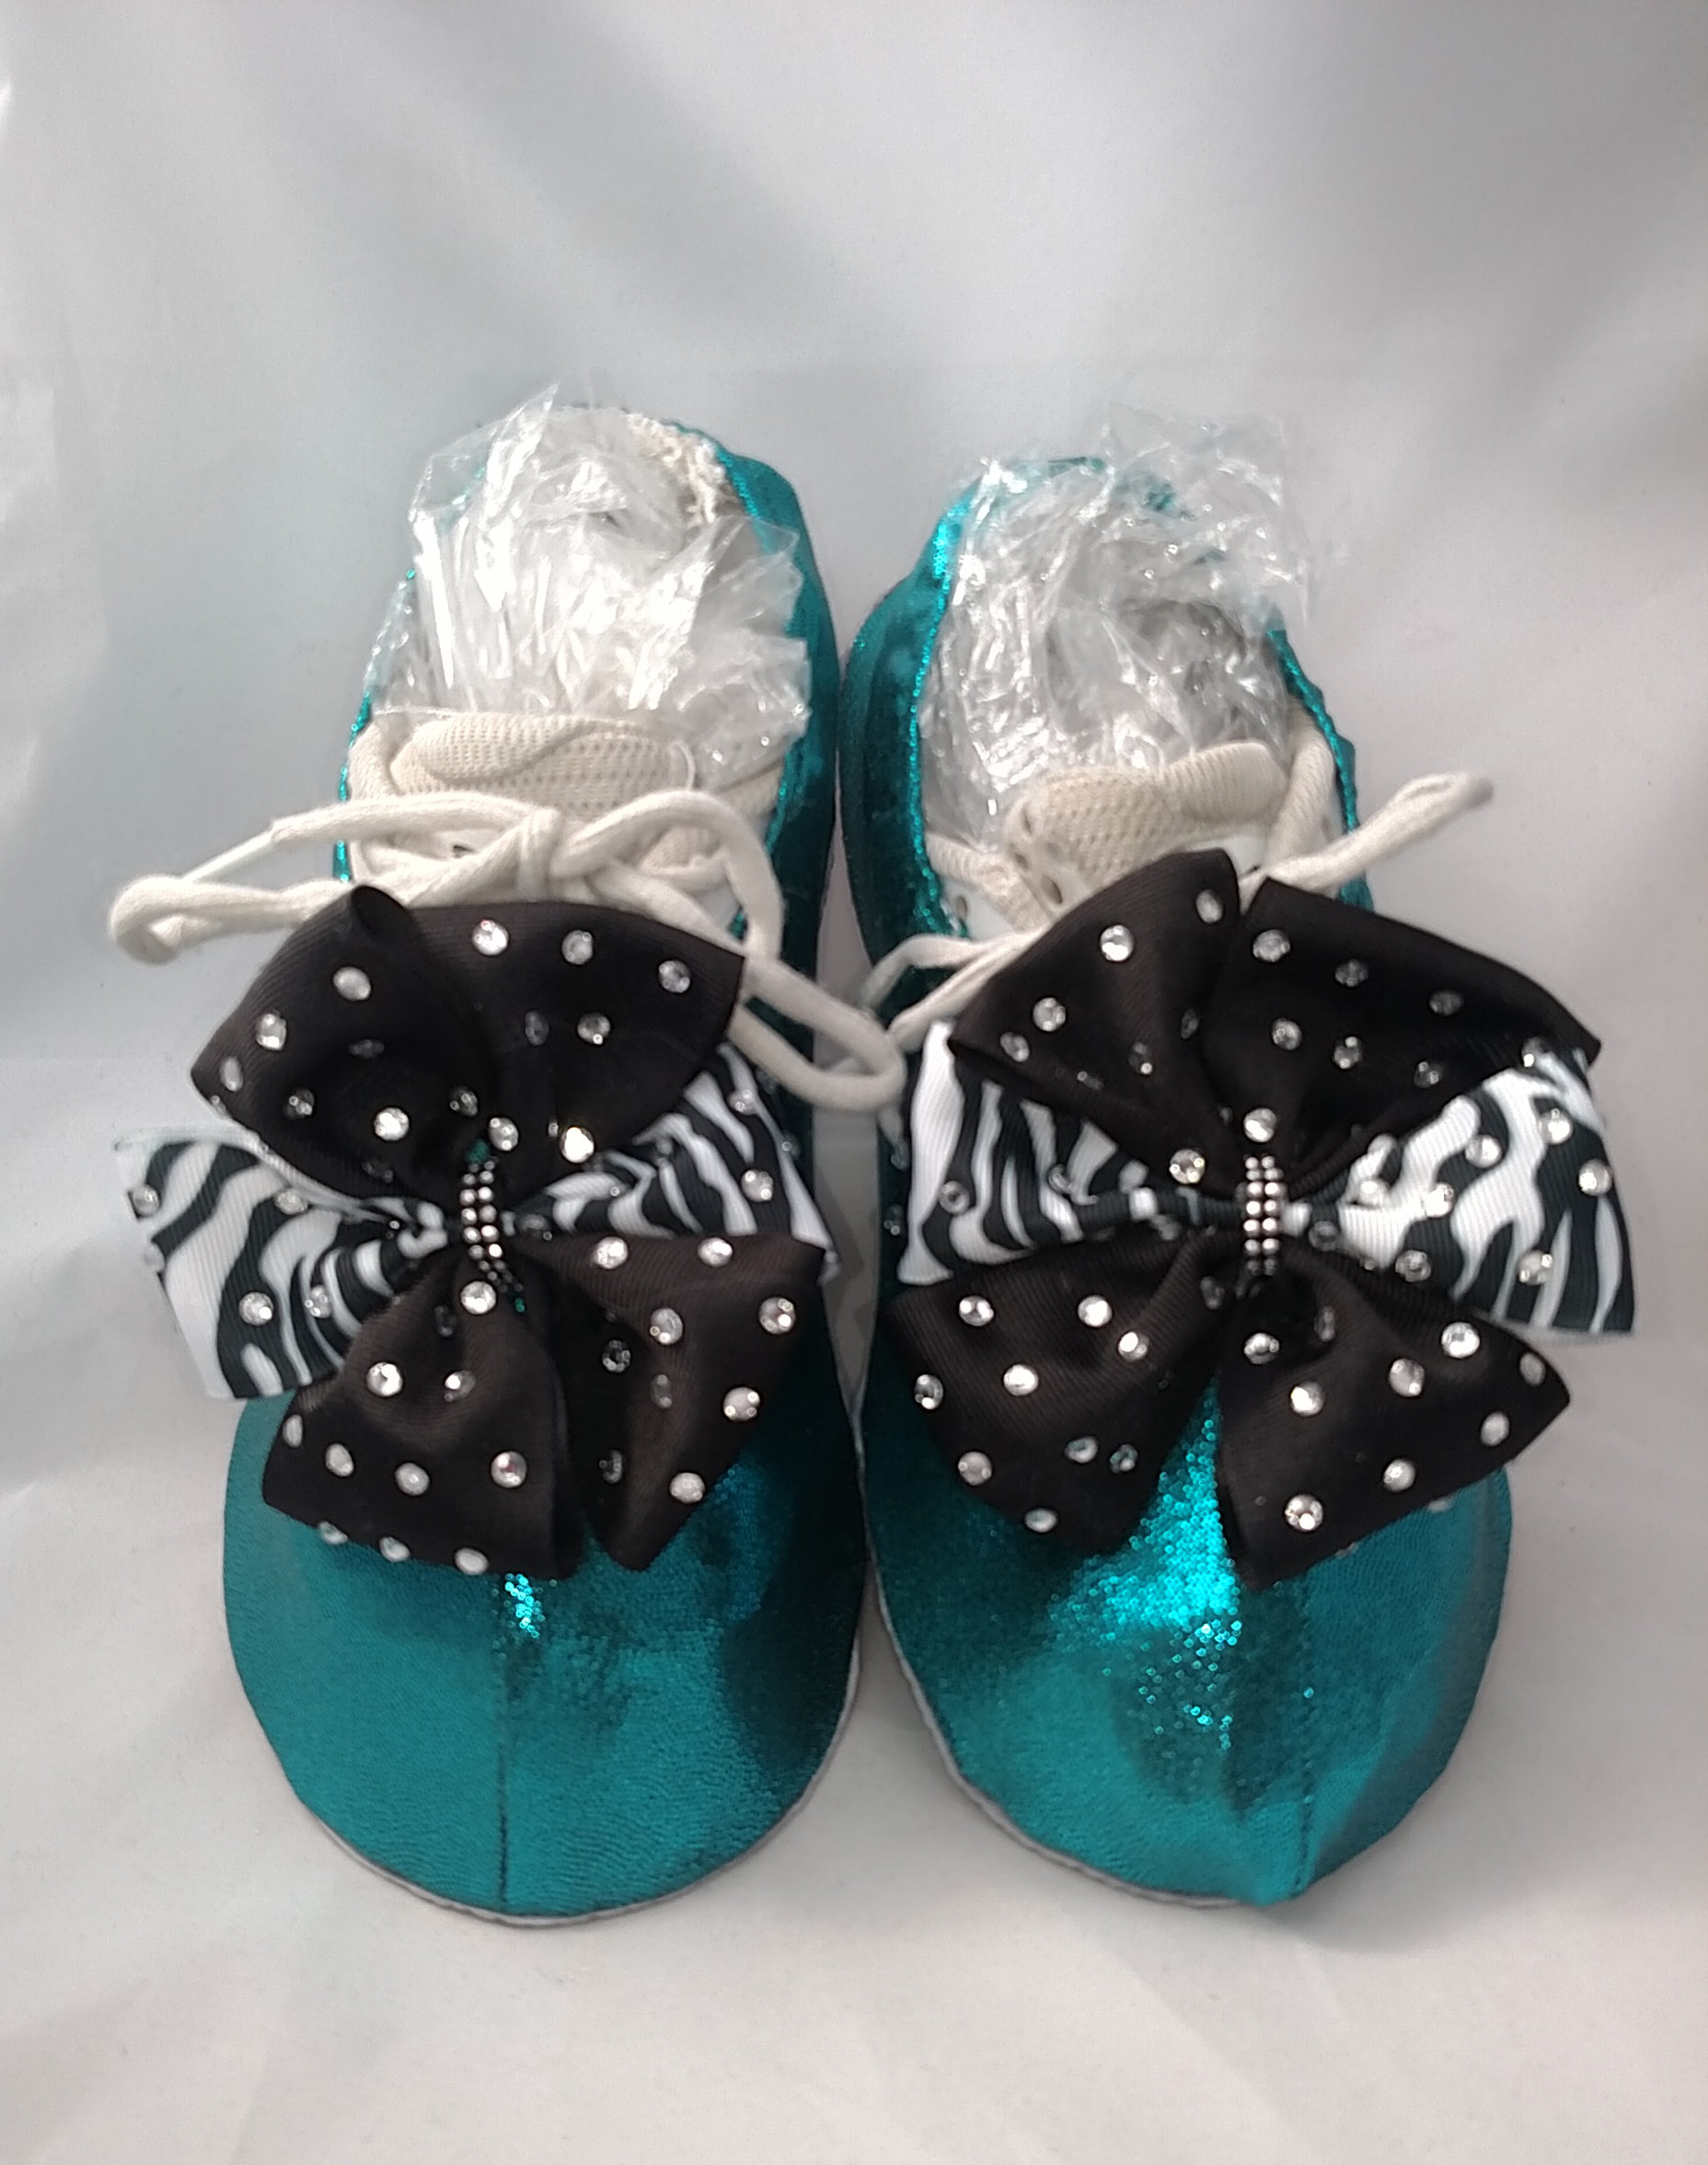 Mystique Shine Cheer Shoe Covers SW-MYS